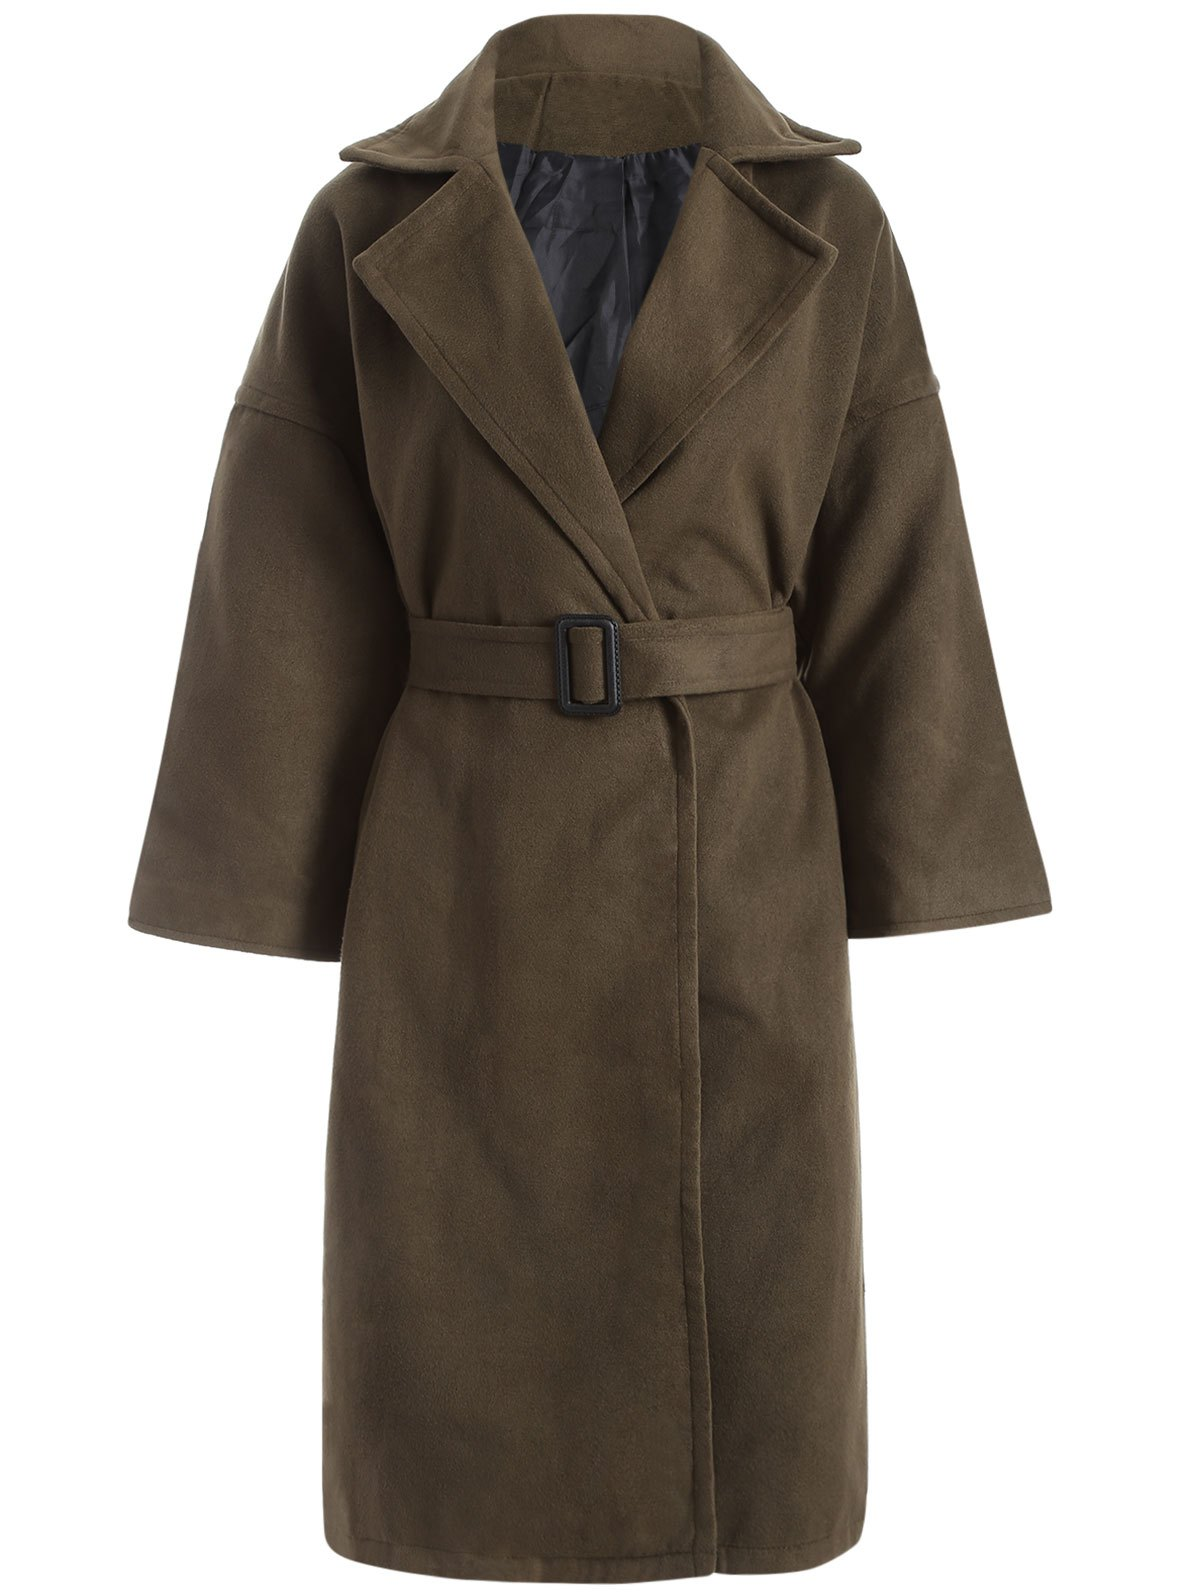 Belted Wool Blend Midi Coat - ARMY GREEN M